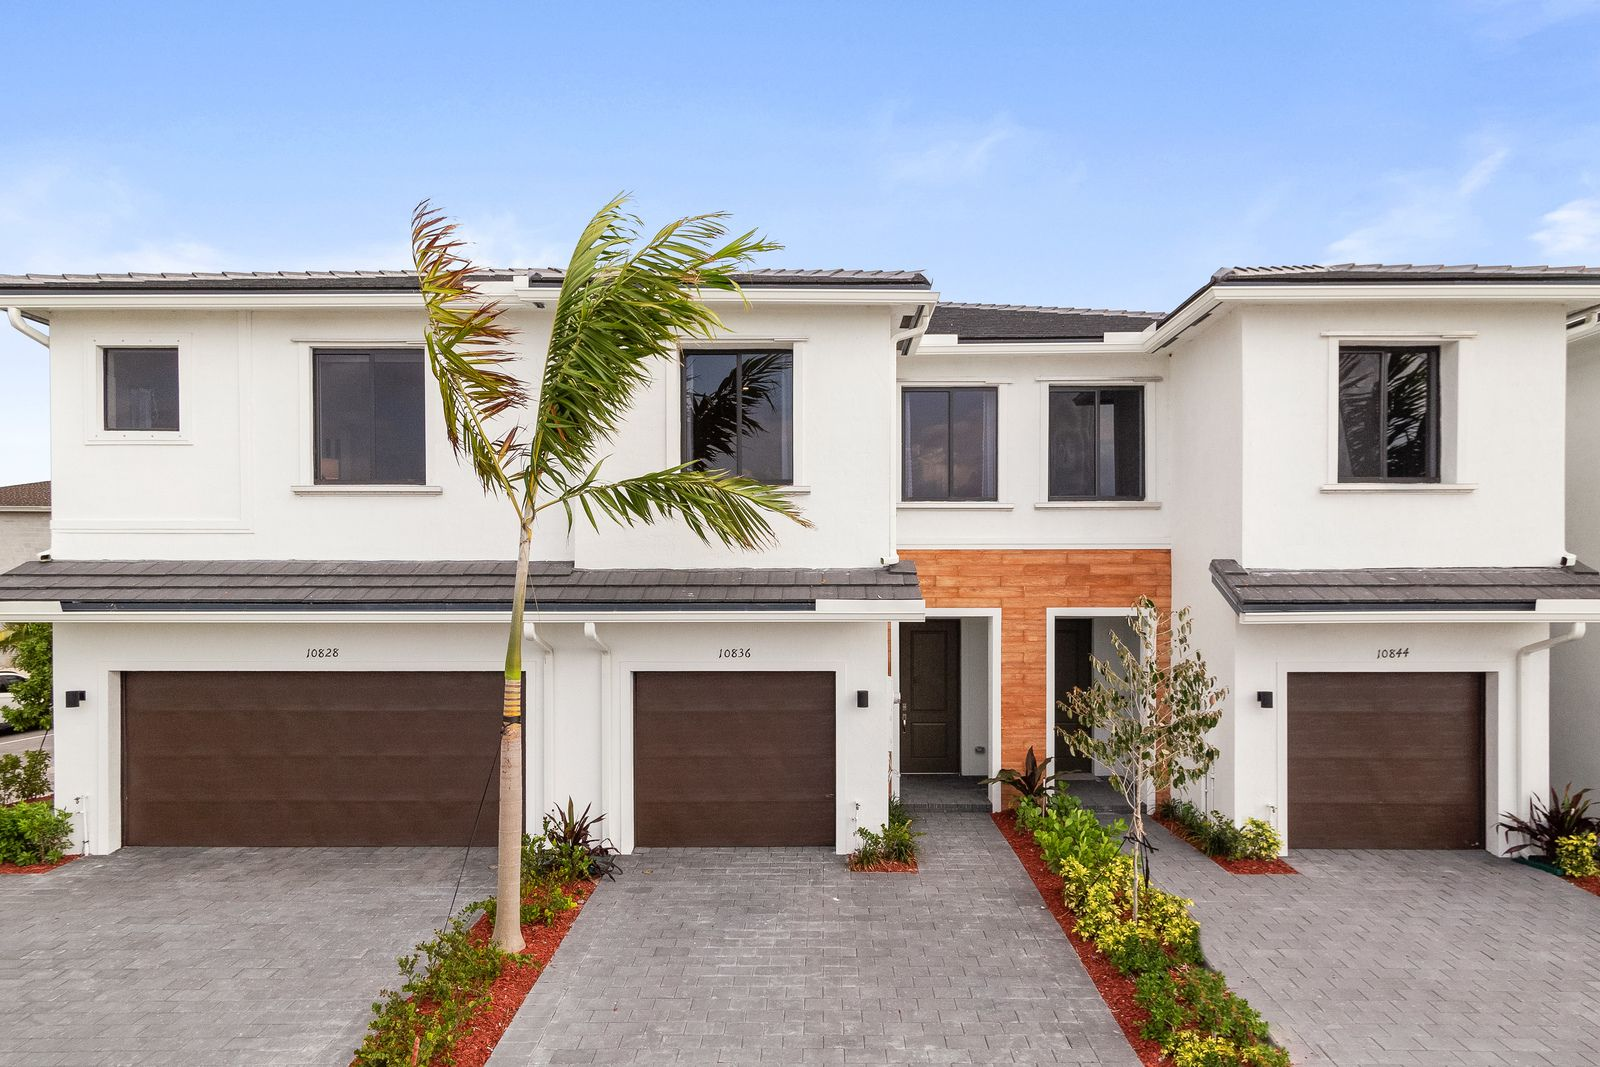 WELCOME HOME TO THE LANDINGS IN MIAMI:Affordable 1-2 Car Garage Townhomes with modern kitchens that include granite countertops and stainless steel appliances.Contact usfor more information!Se Habla Espanol!